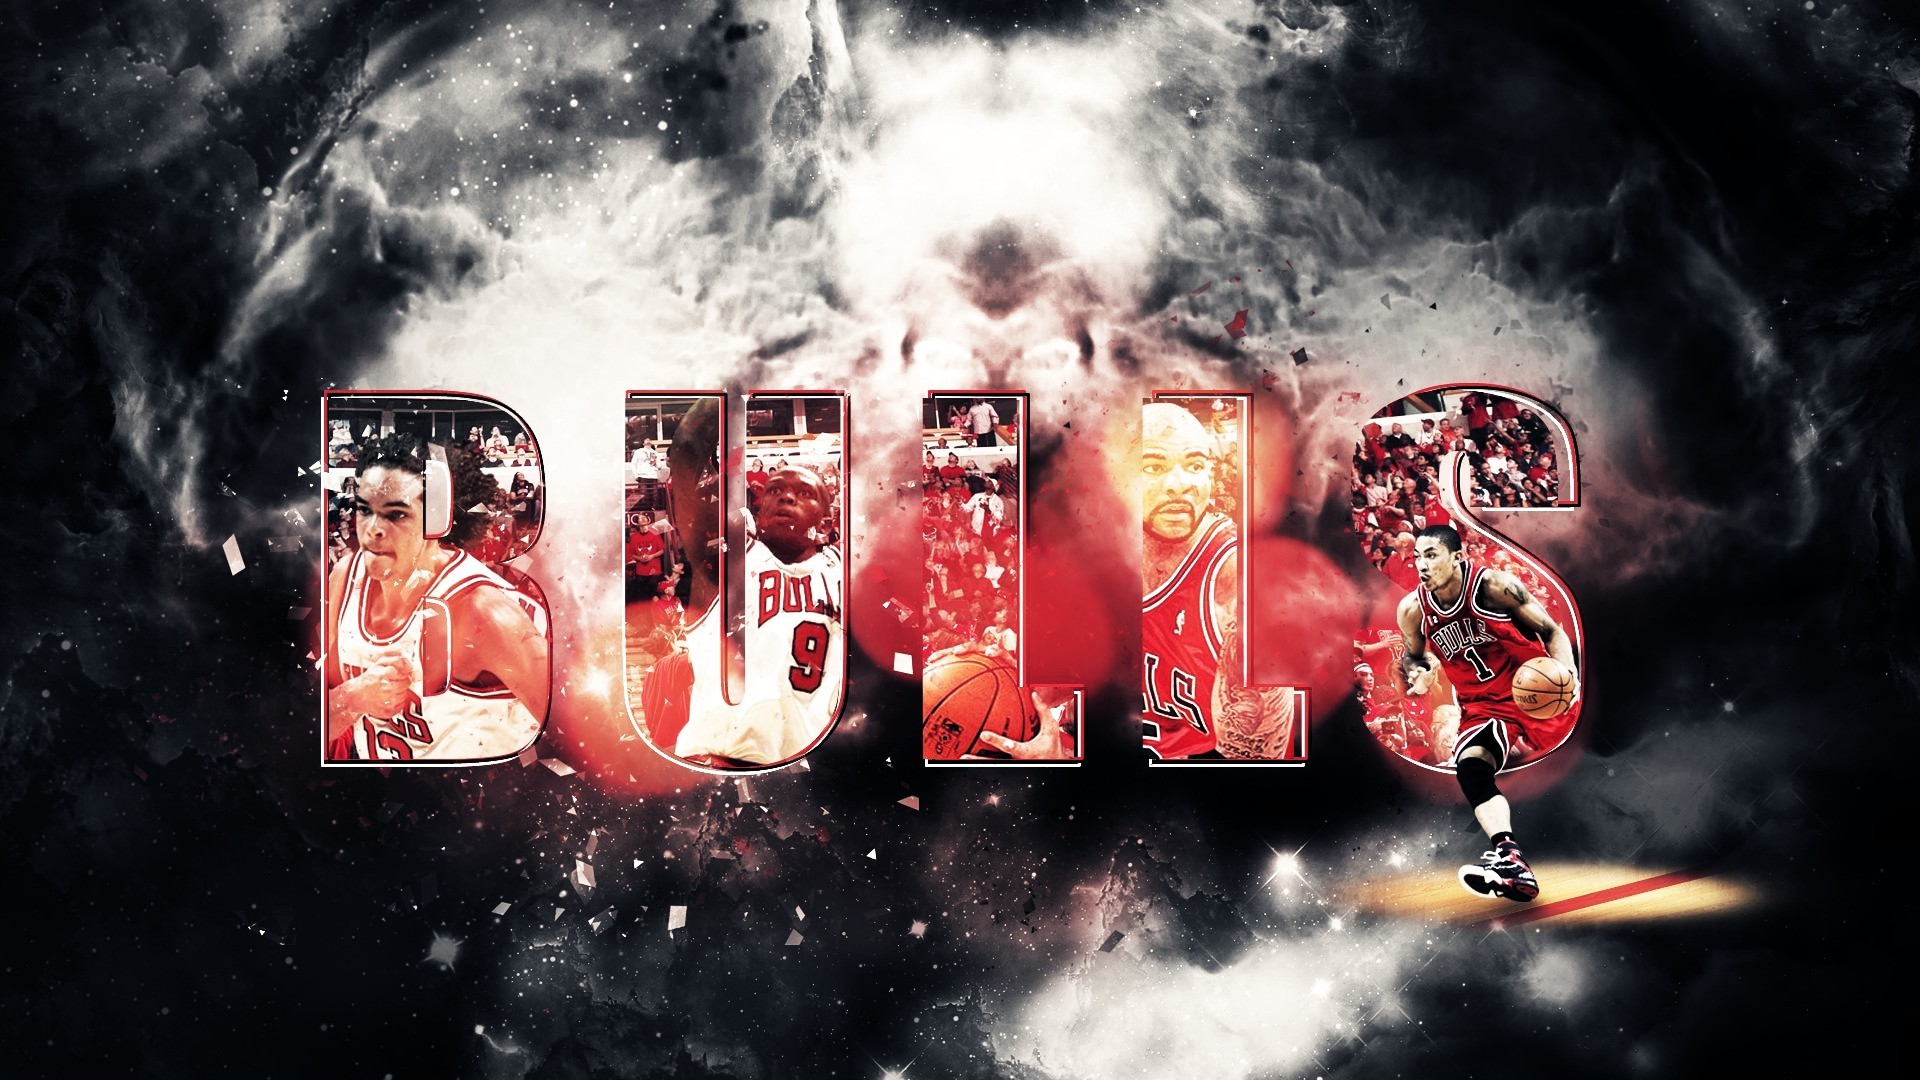 Chicago Bulls Wallpaper Collection For Free Download